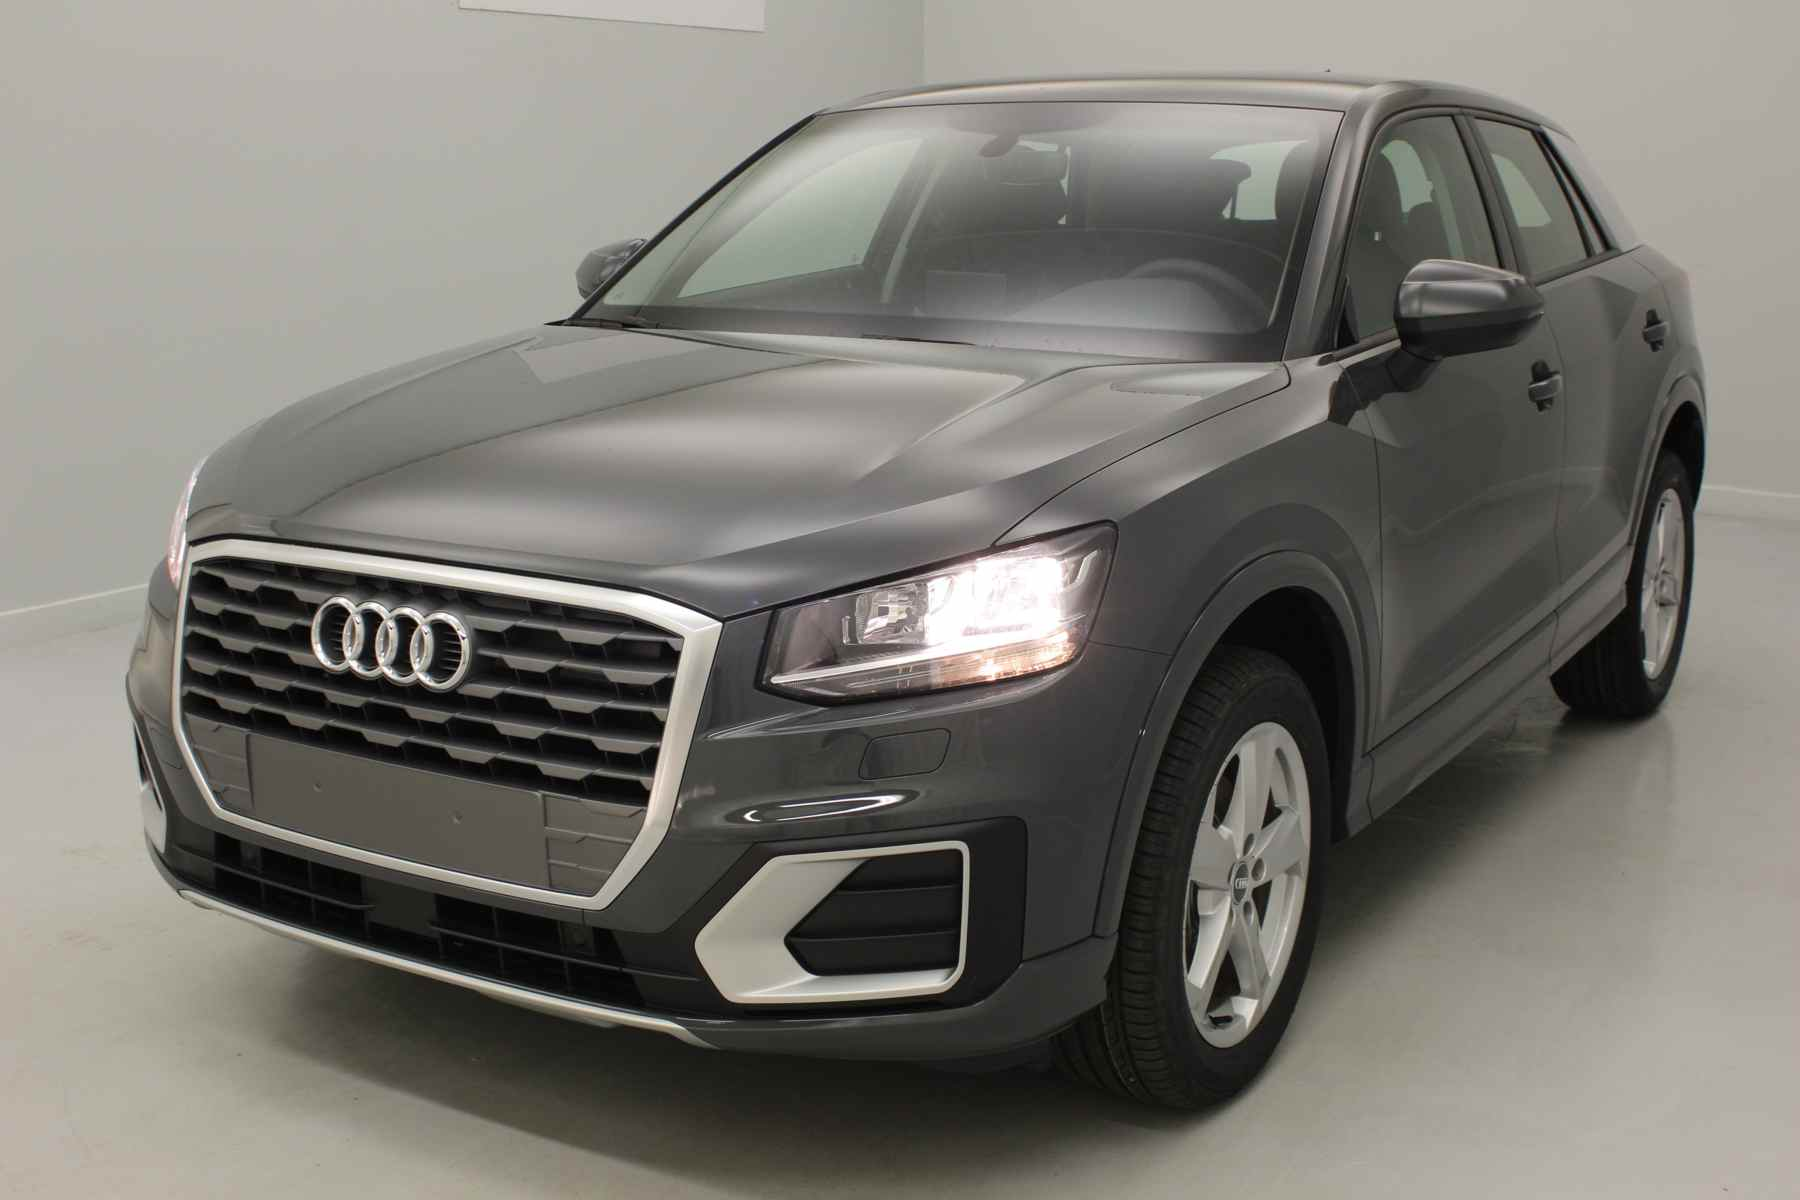 AUDI Q2 1.4 TFSI COD 150 ch BVM6 Sport Gris Nano + Navigation + Audi Parking System Plus + Caméra avec options